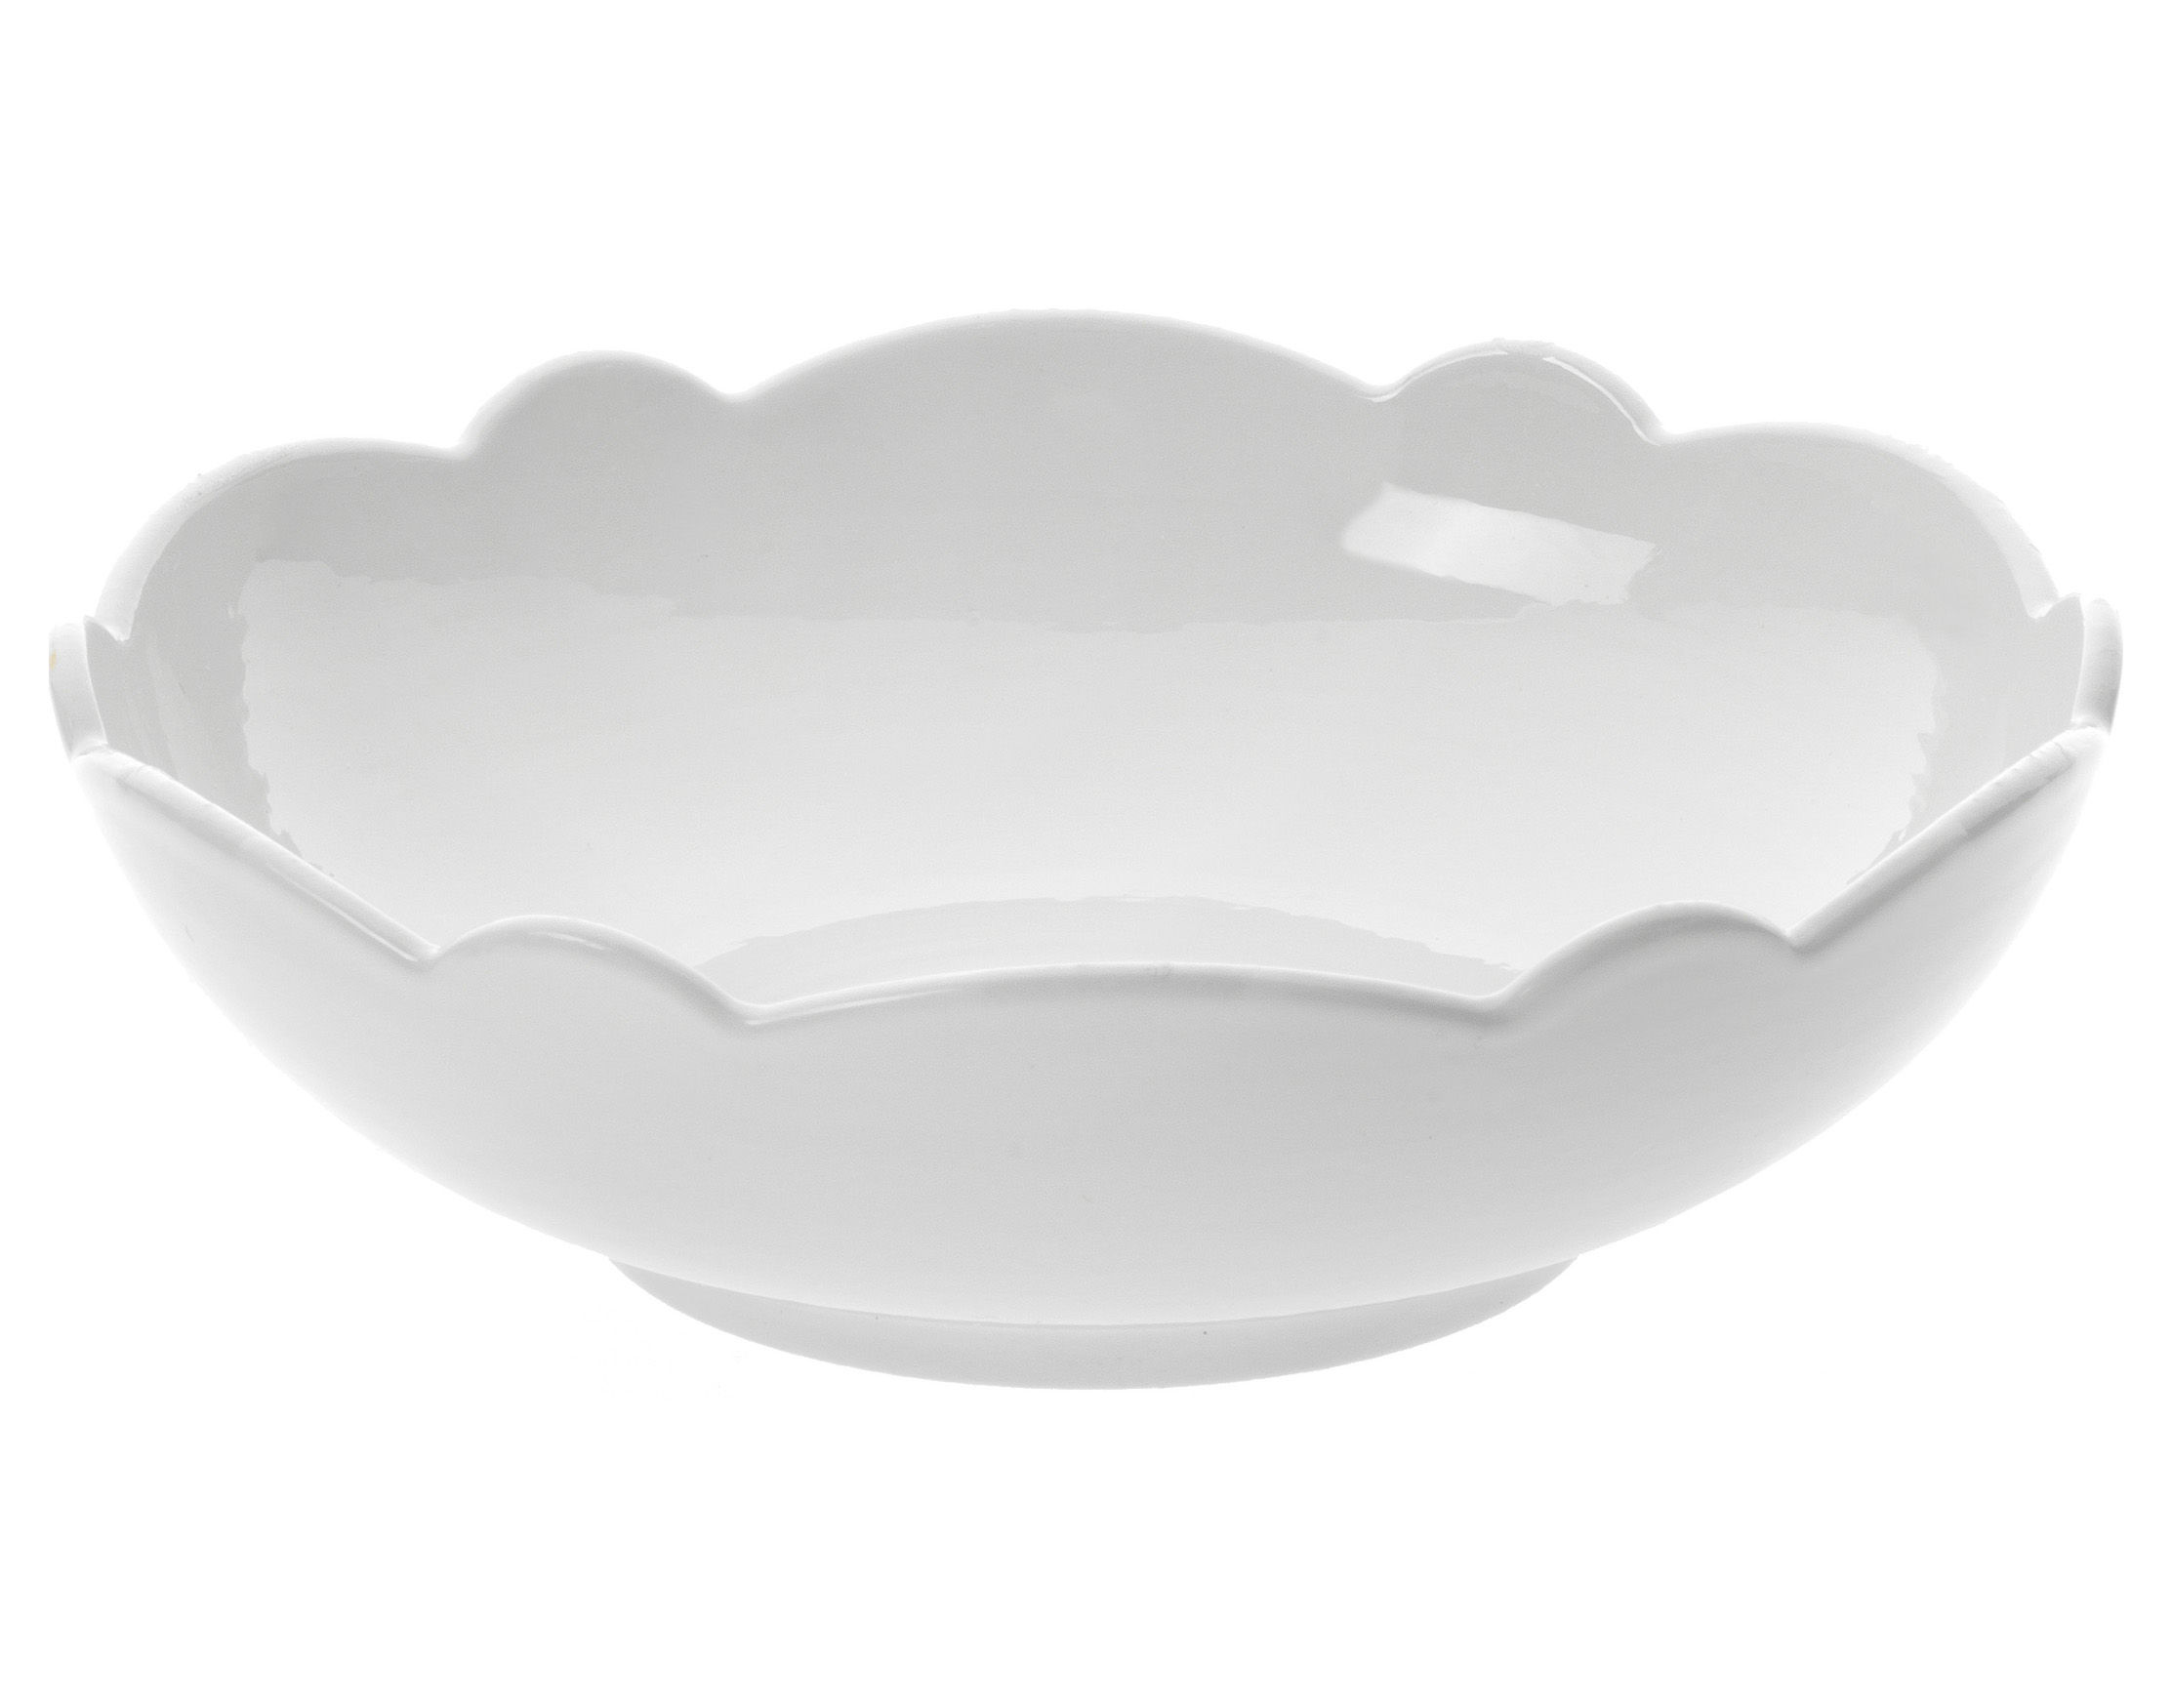 Tableware - Bowls - Dressed Small Bowl - Ø 13 cm by Alessi - White - China